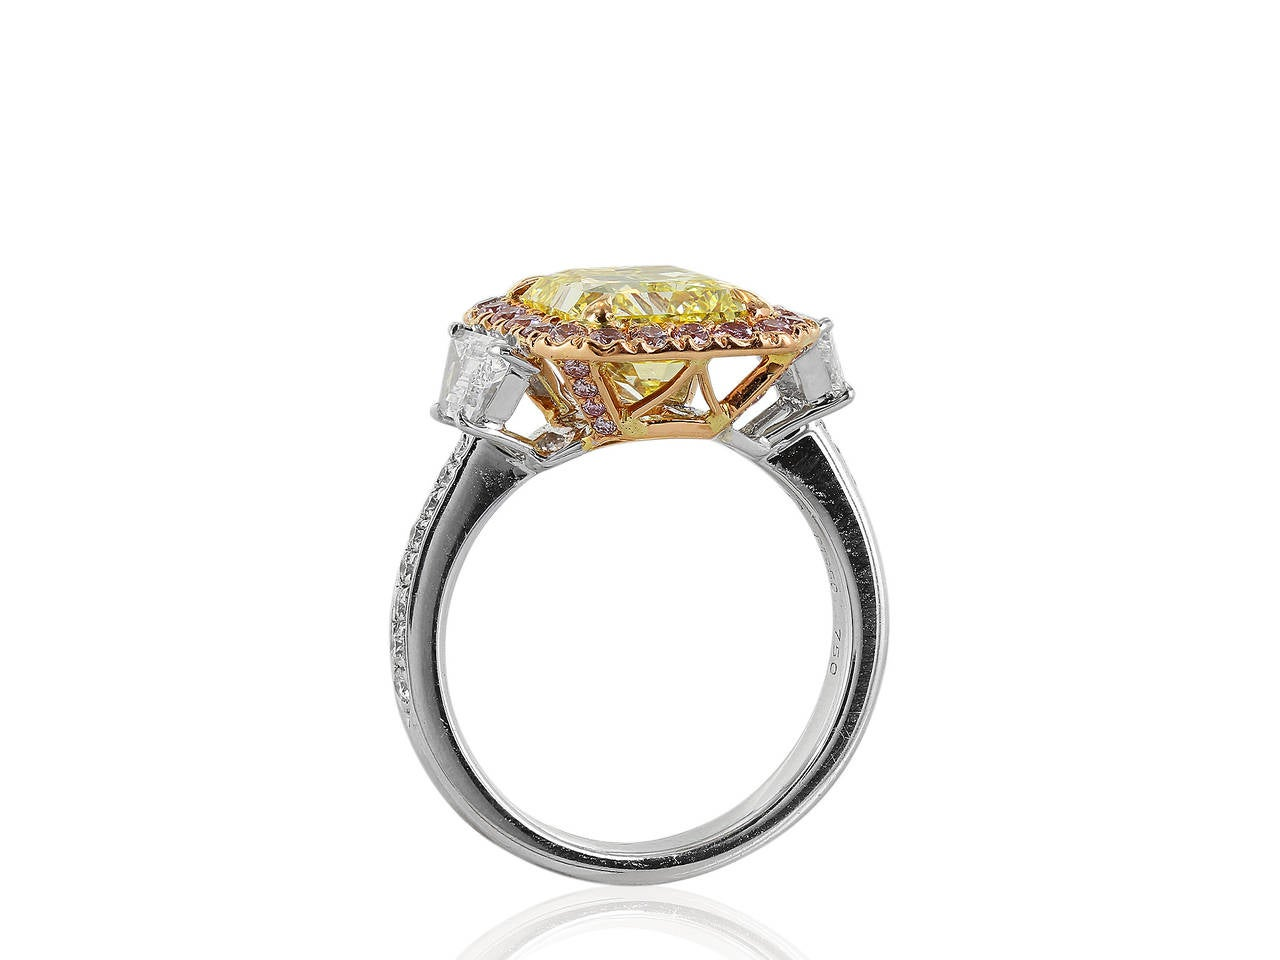 Contemporary 3.02 Carat GIA Certified Fancy Intense Yellow and Pink Diamond Engagement Ring For Sale